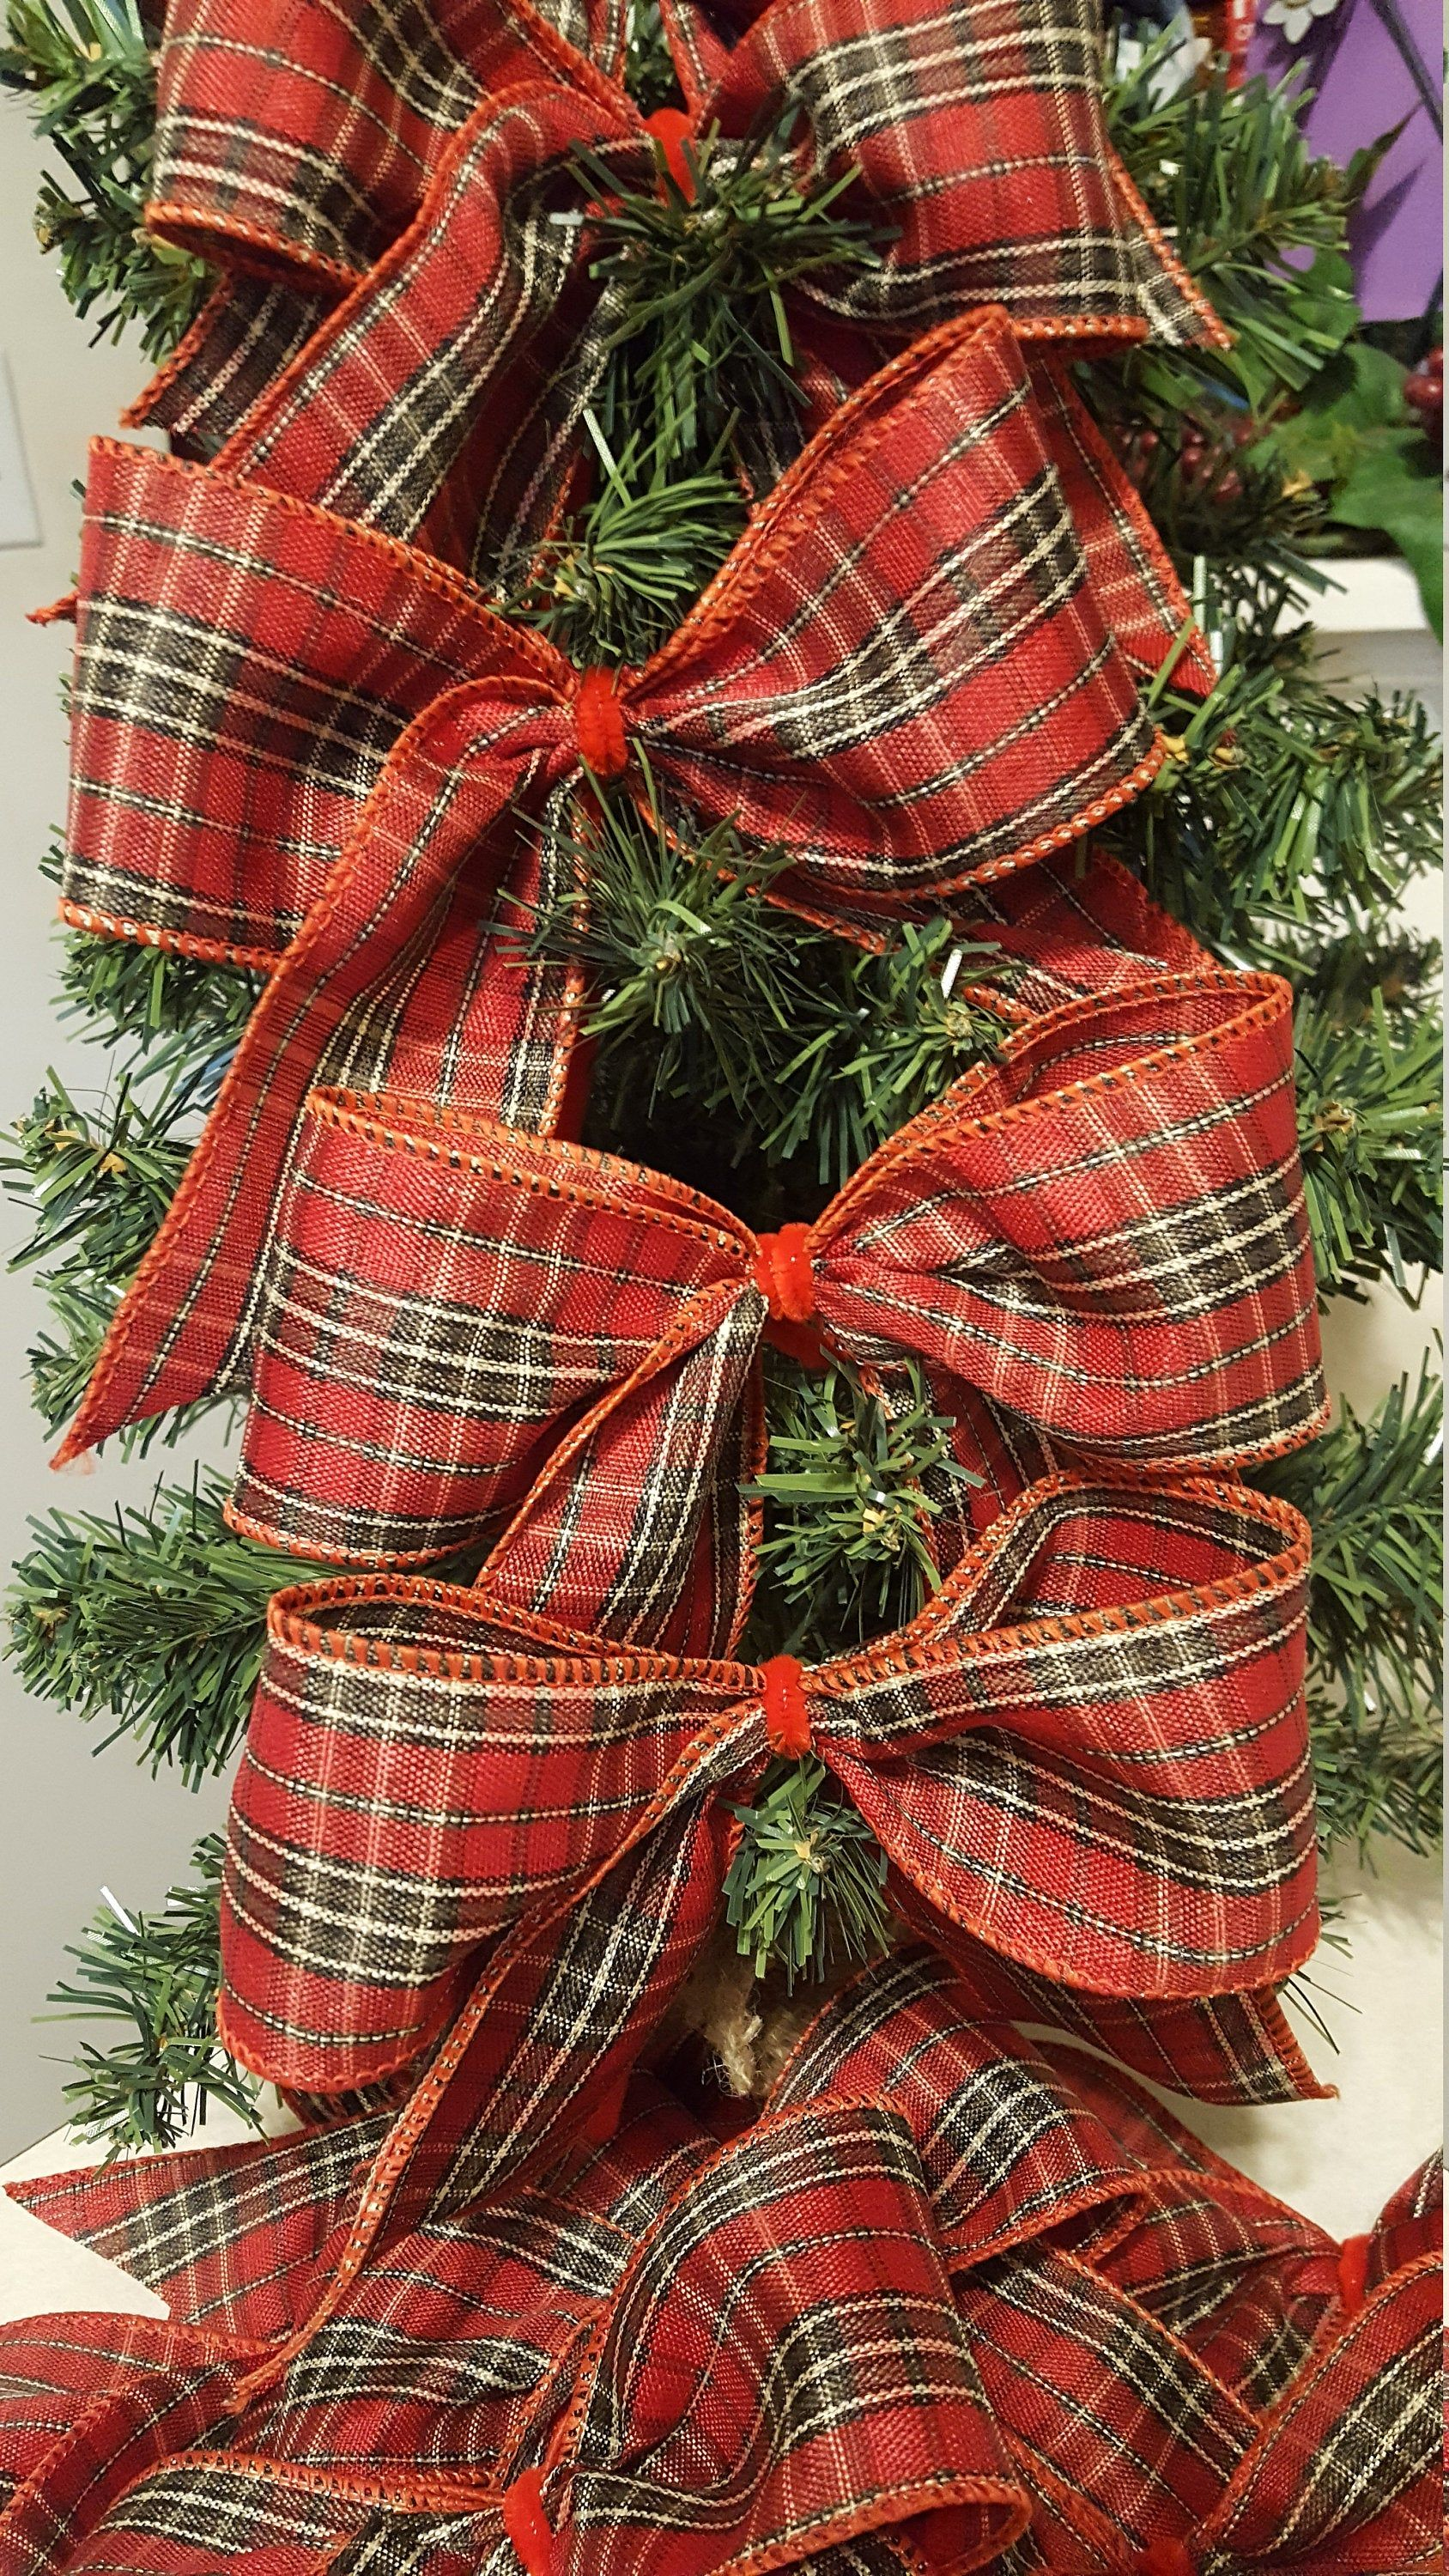 Order Now To Provide Time For Holiday Shipping Www Etsy Com Shop Weedsbyrose Excellent Customer Plaid Christmas Tree Christmas Tree Bows Christmas Tree Themes